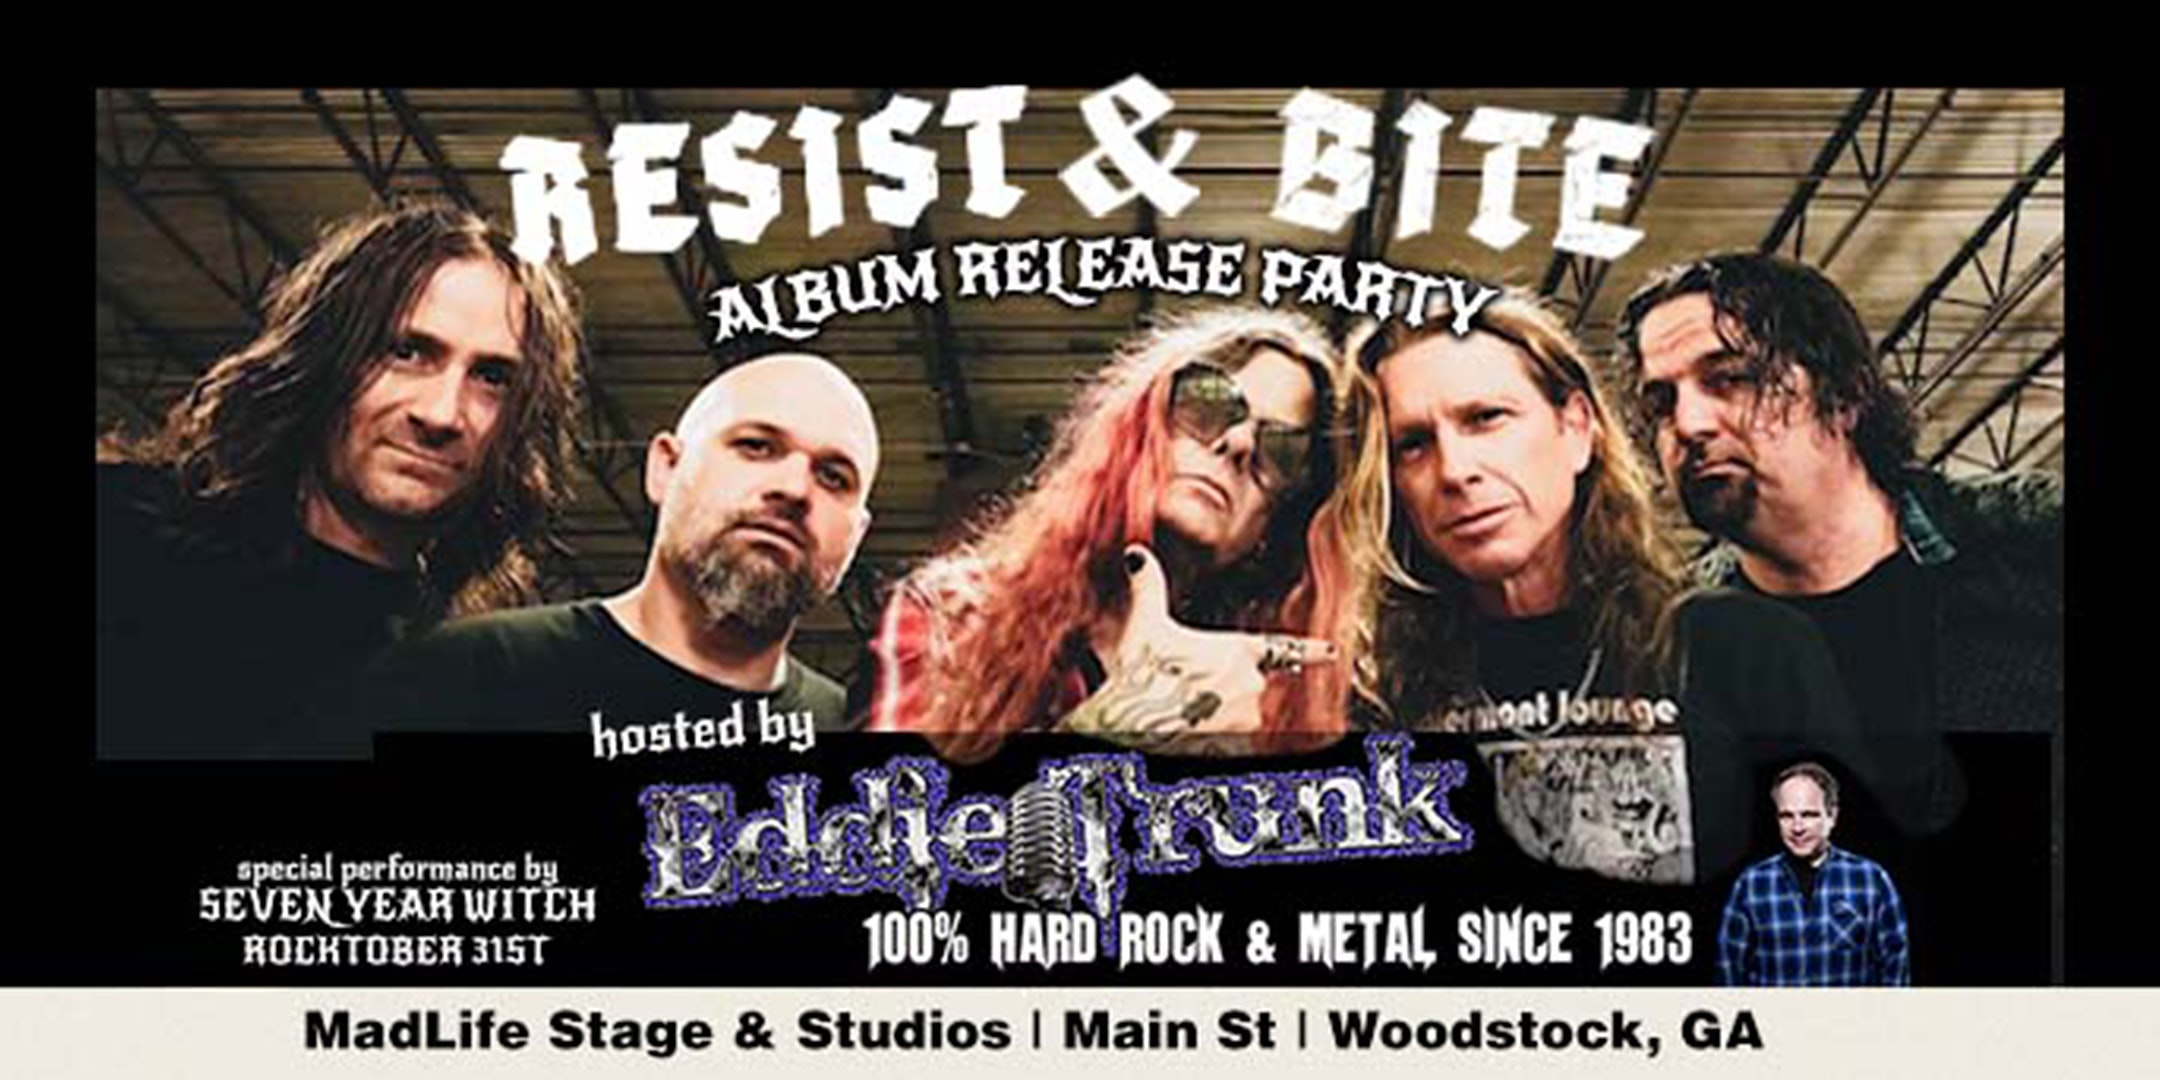 'Resist & Bite' Album Release Party — Hosted by Eddie Trunk of Sirius XM